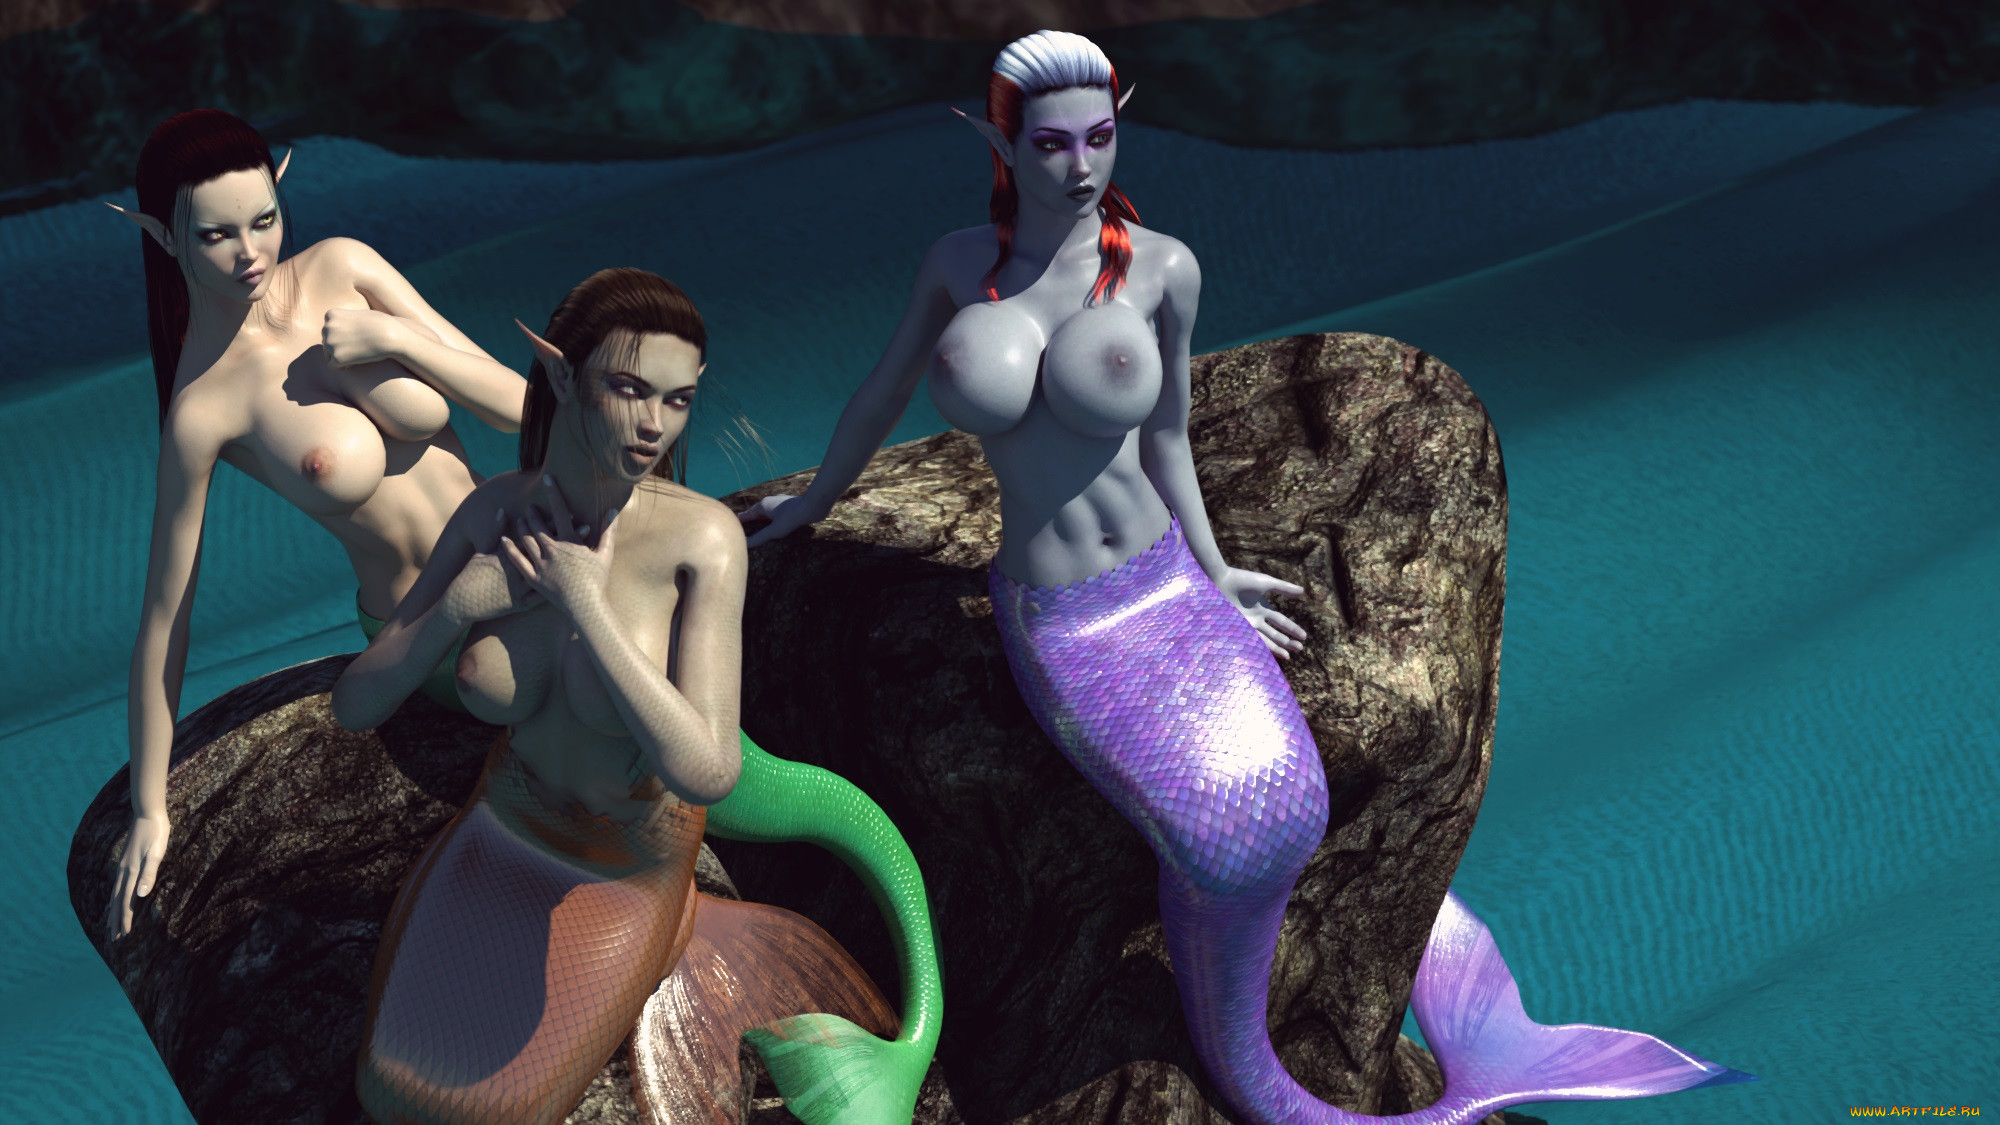 3d mermaid xxx photo porno gallery